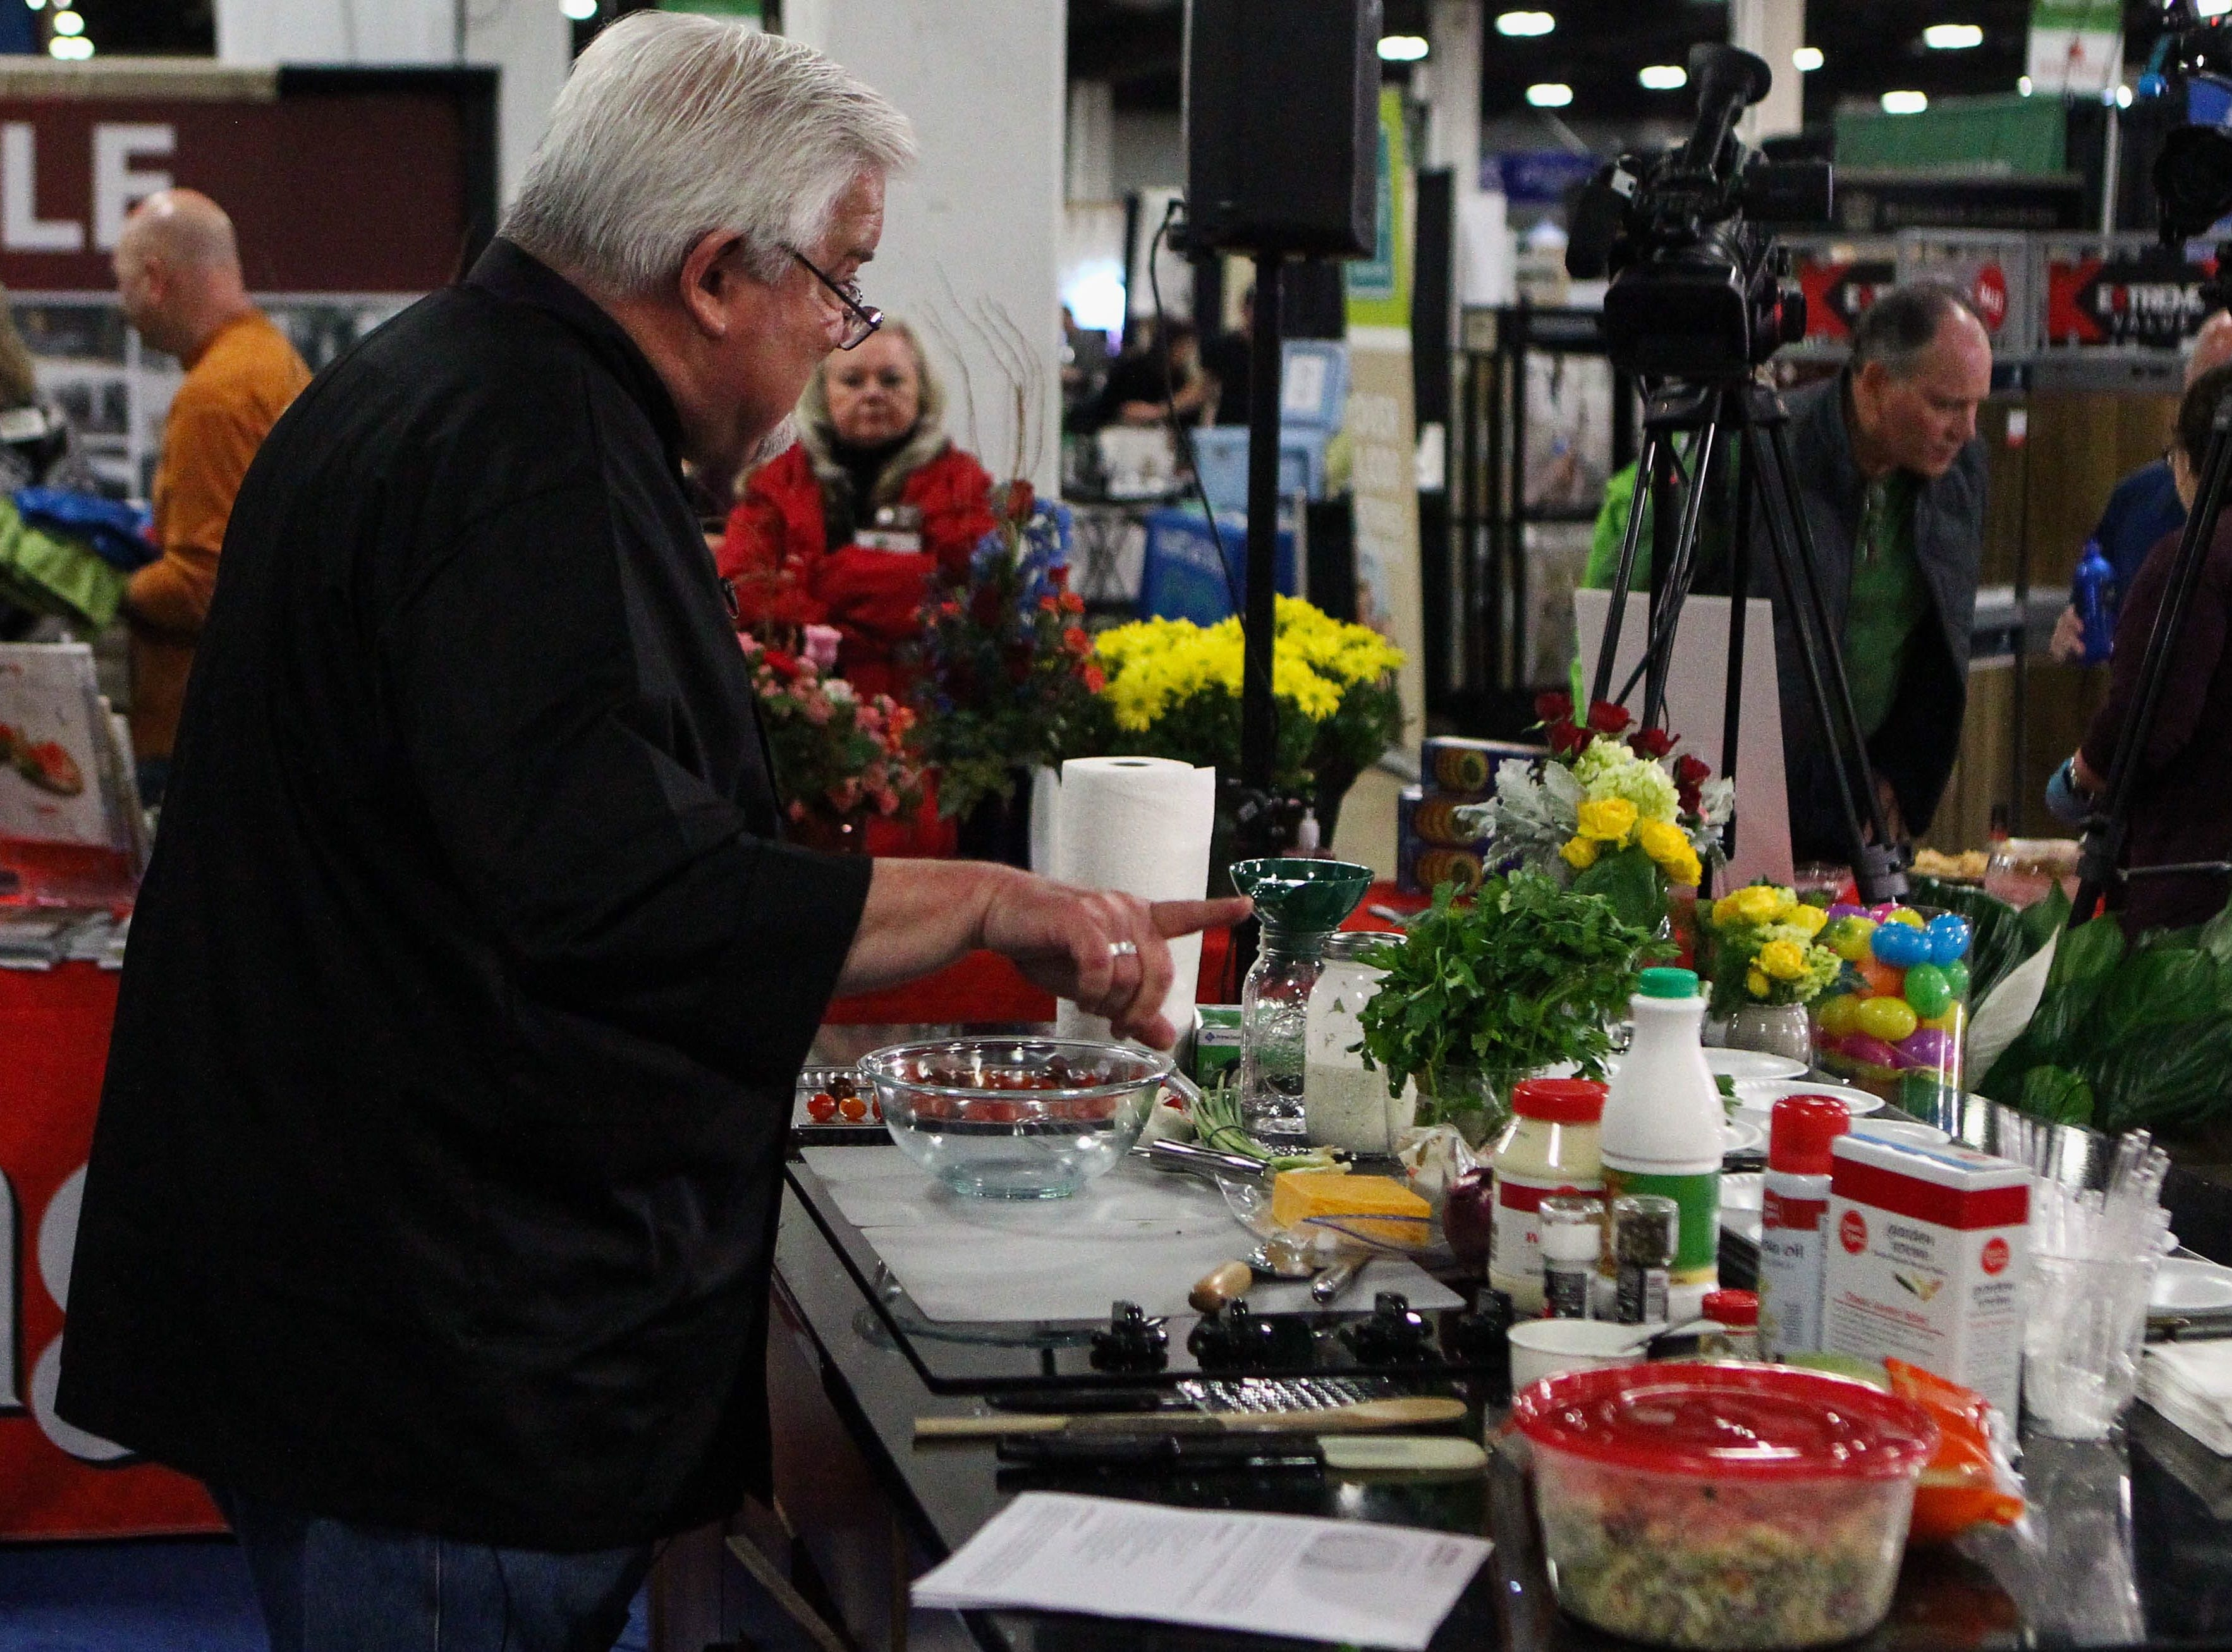 Chef Steve Woronoff talks through his dish preparation at the Southern Home and Garden Show at the Greenville Convention Center on Friday, March 1, 2019.